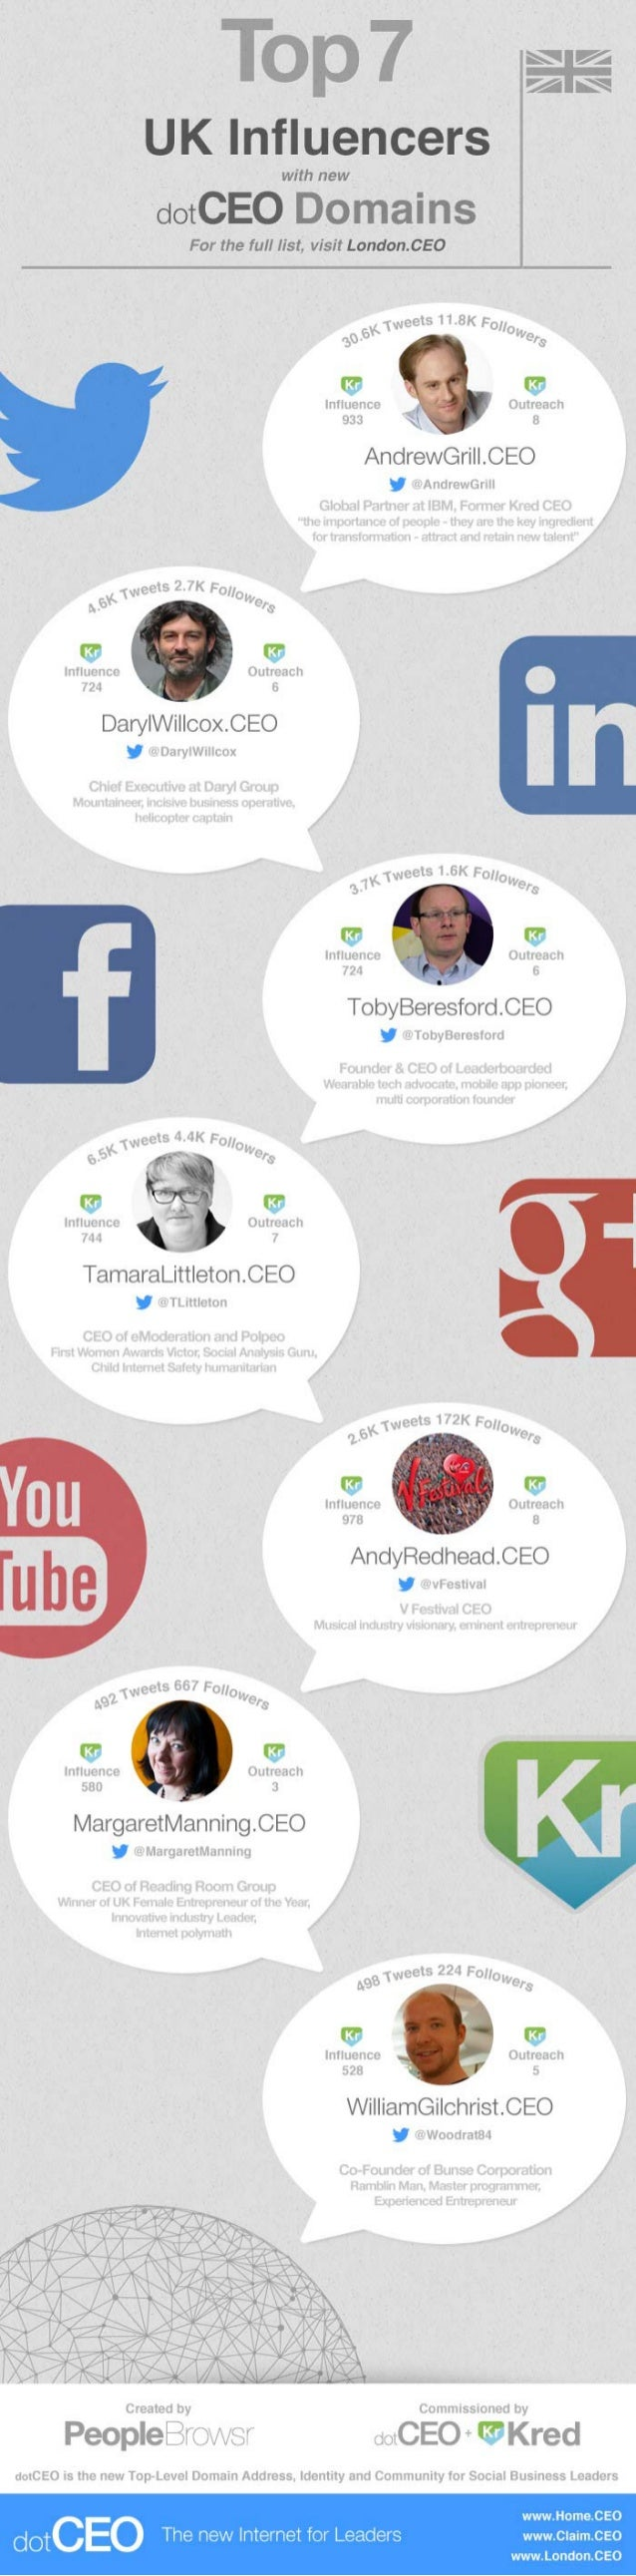 Top 7 UK Influencers in the London.CEO Business Community